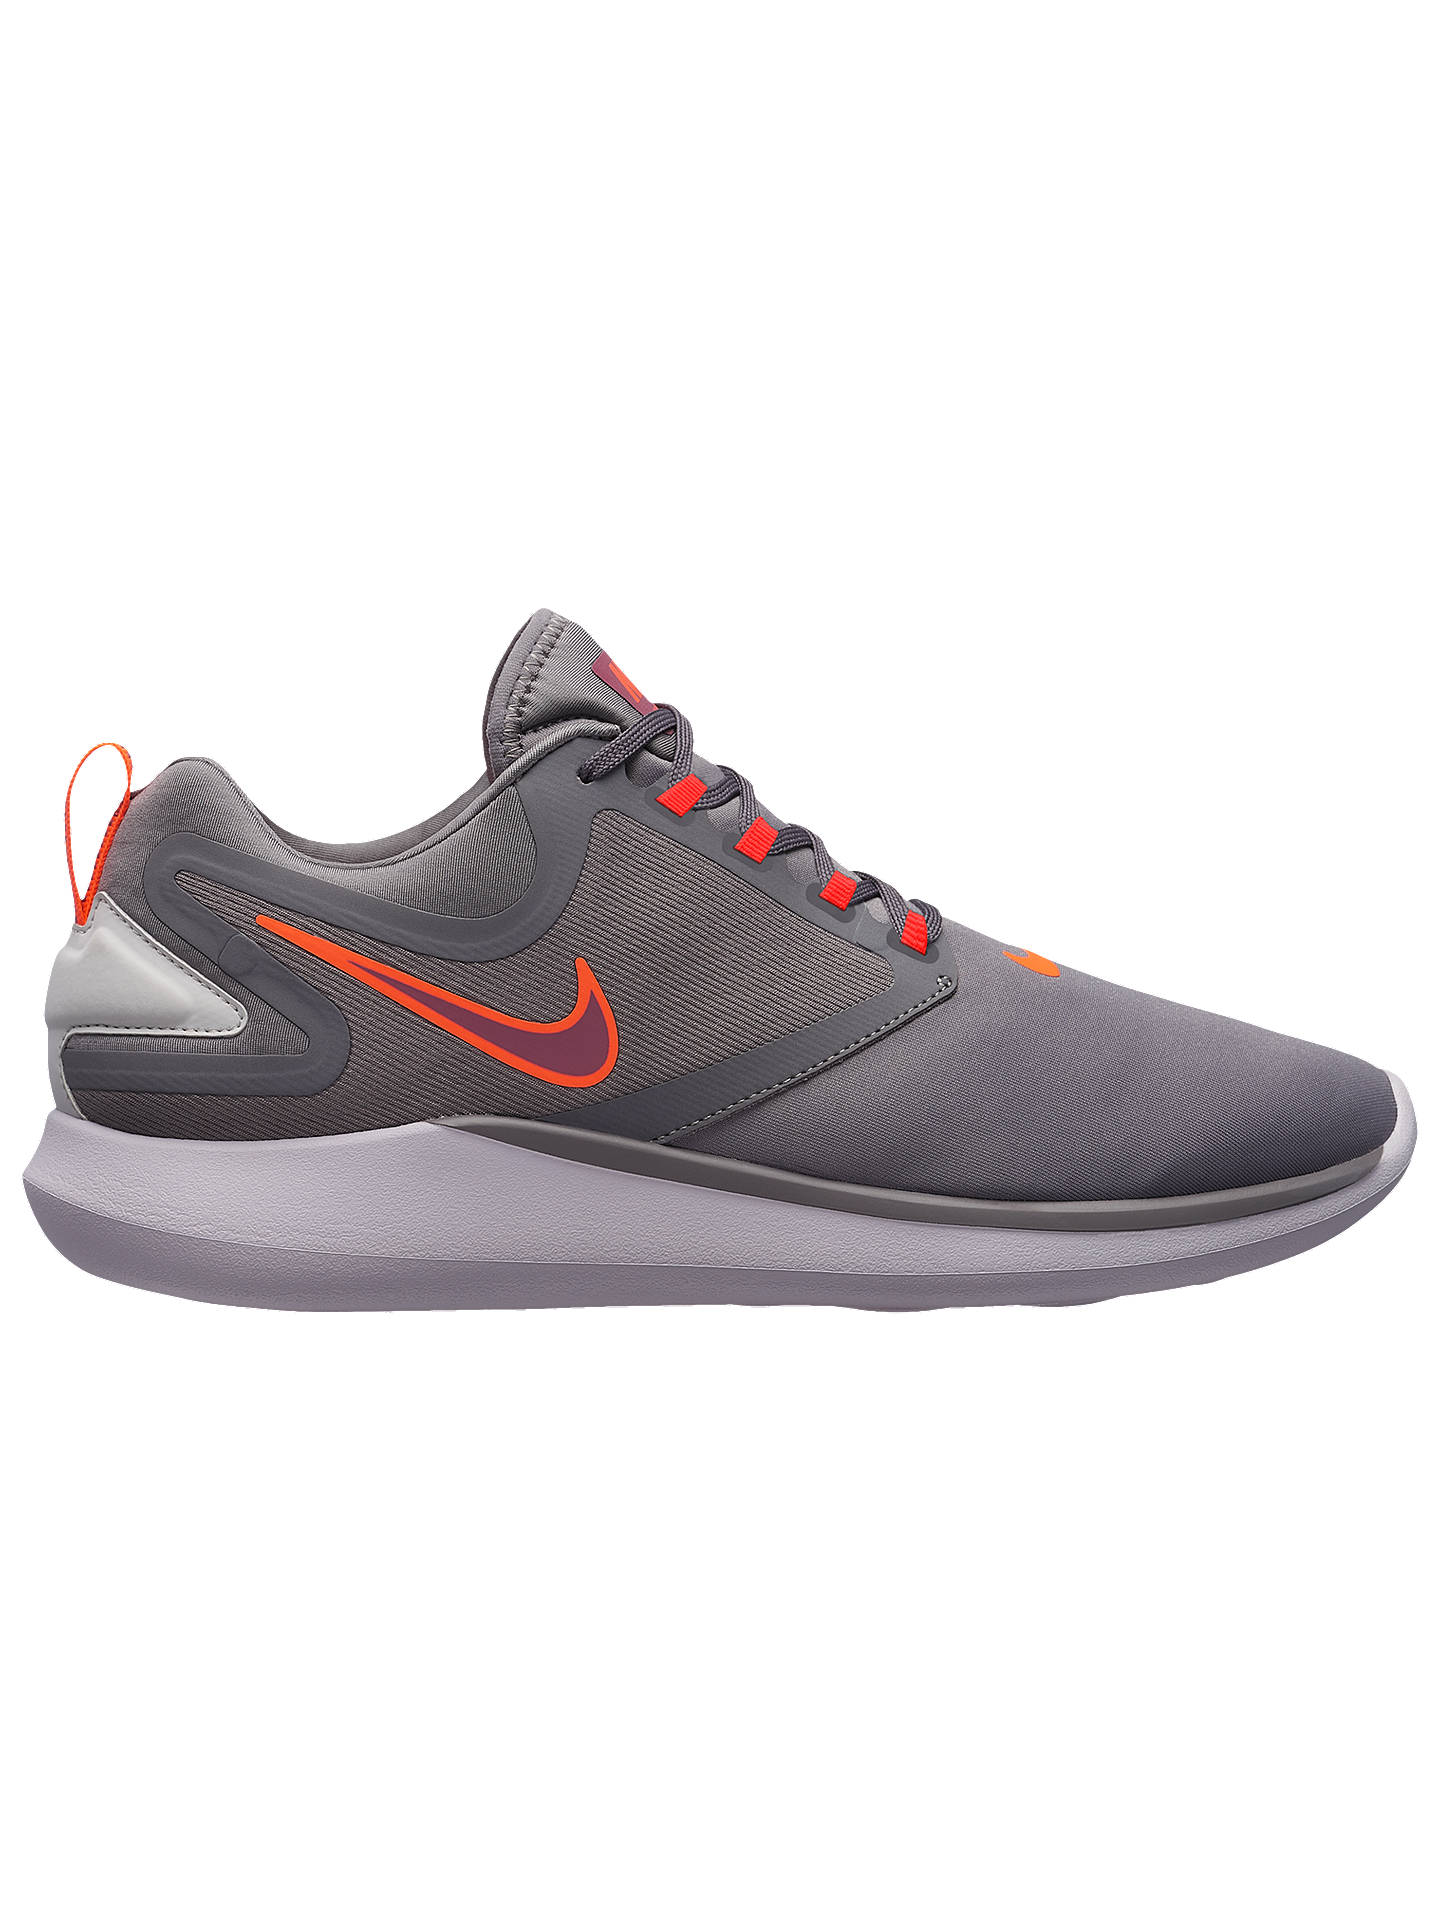 e0feed92897 Nike LunarSolo Running Shoe at John Lewis   Partners